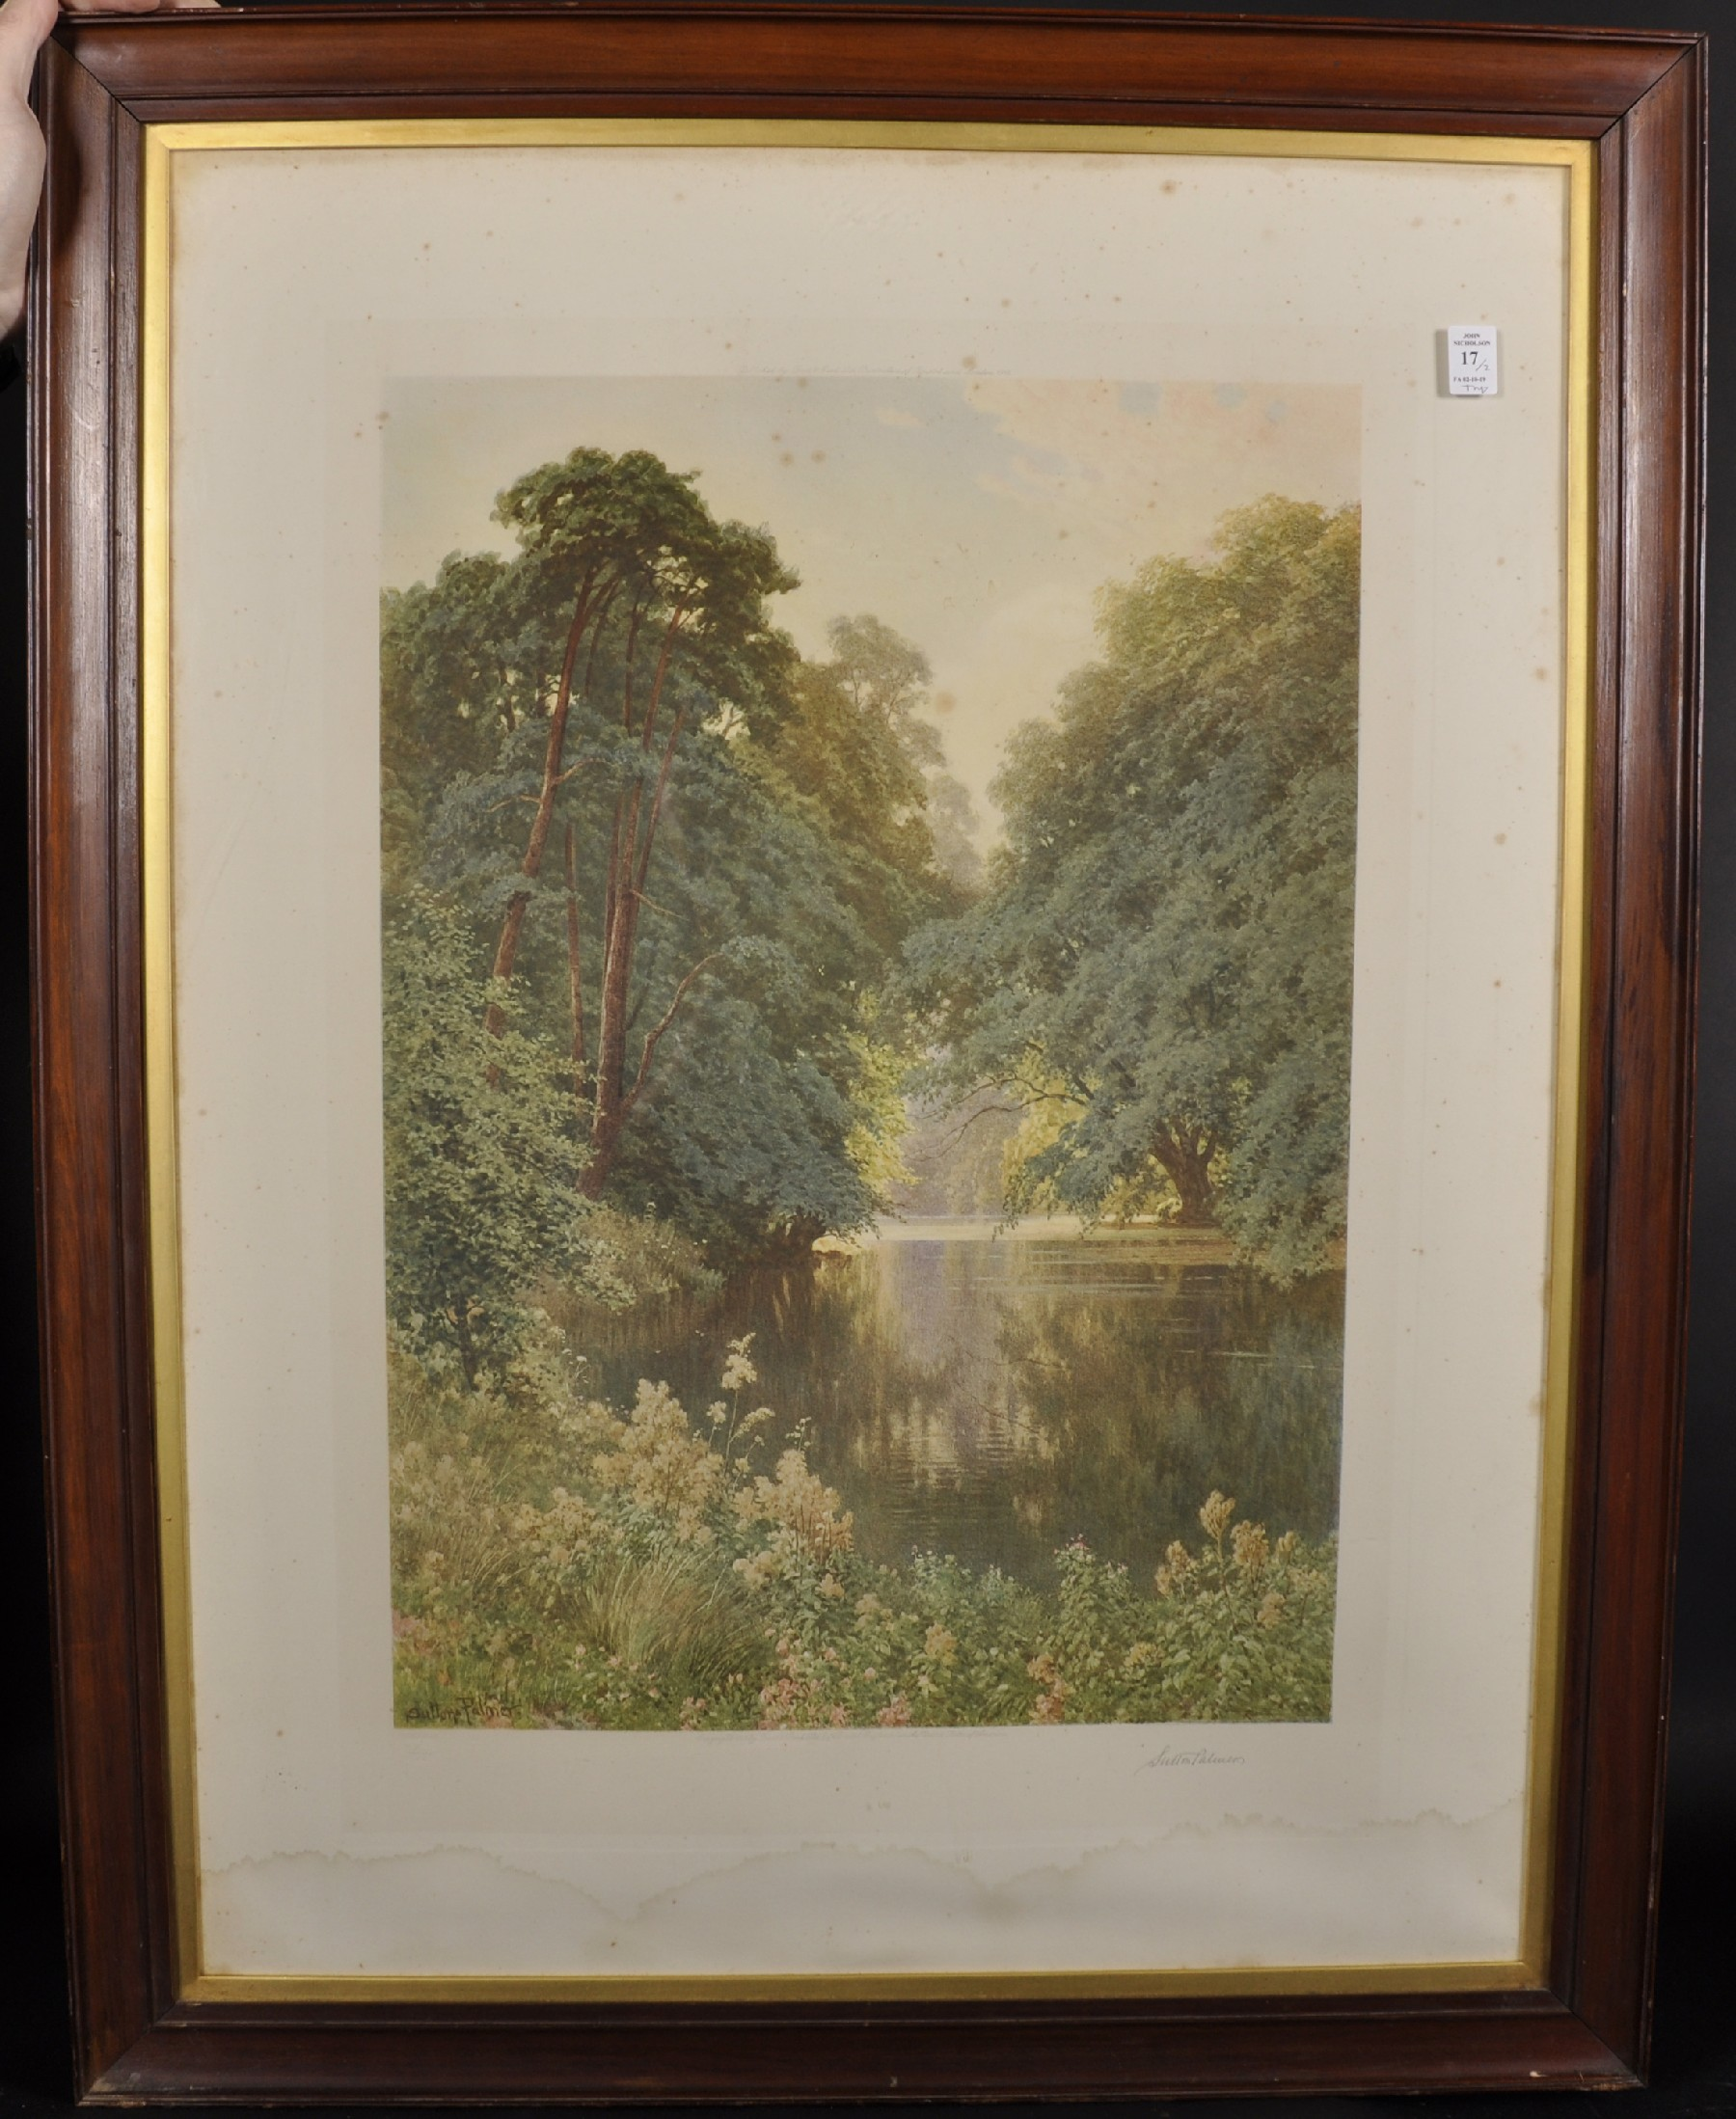 Harry Sutton Palmer (1854-1933) British. A Tranquil River Landscape, Print, Signed in Pencil, with - Image 2 of 6